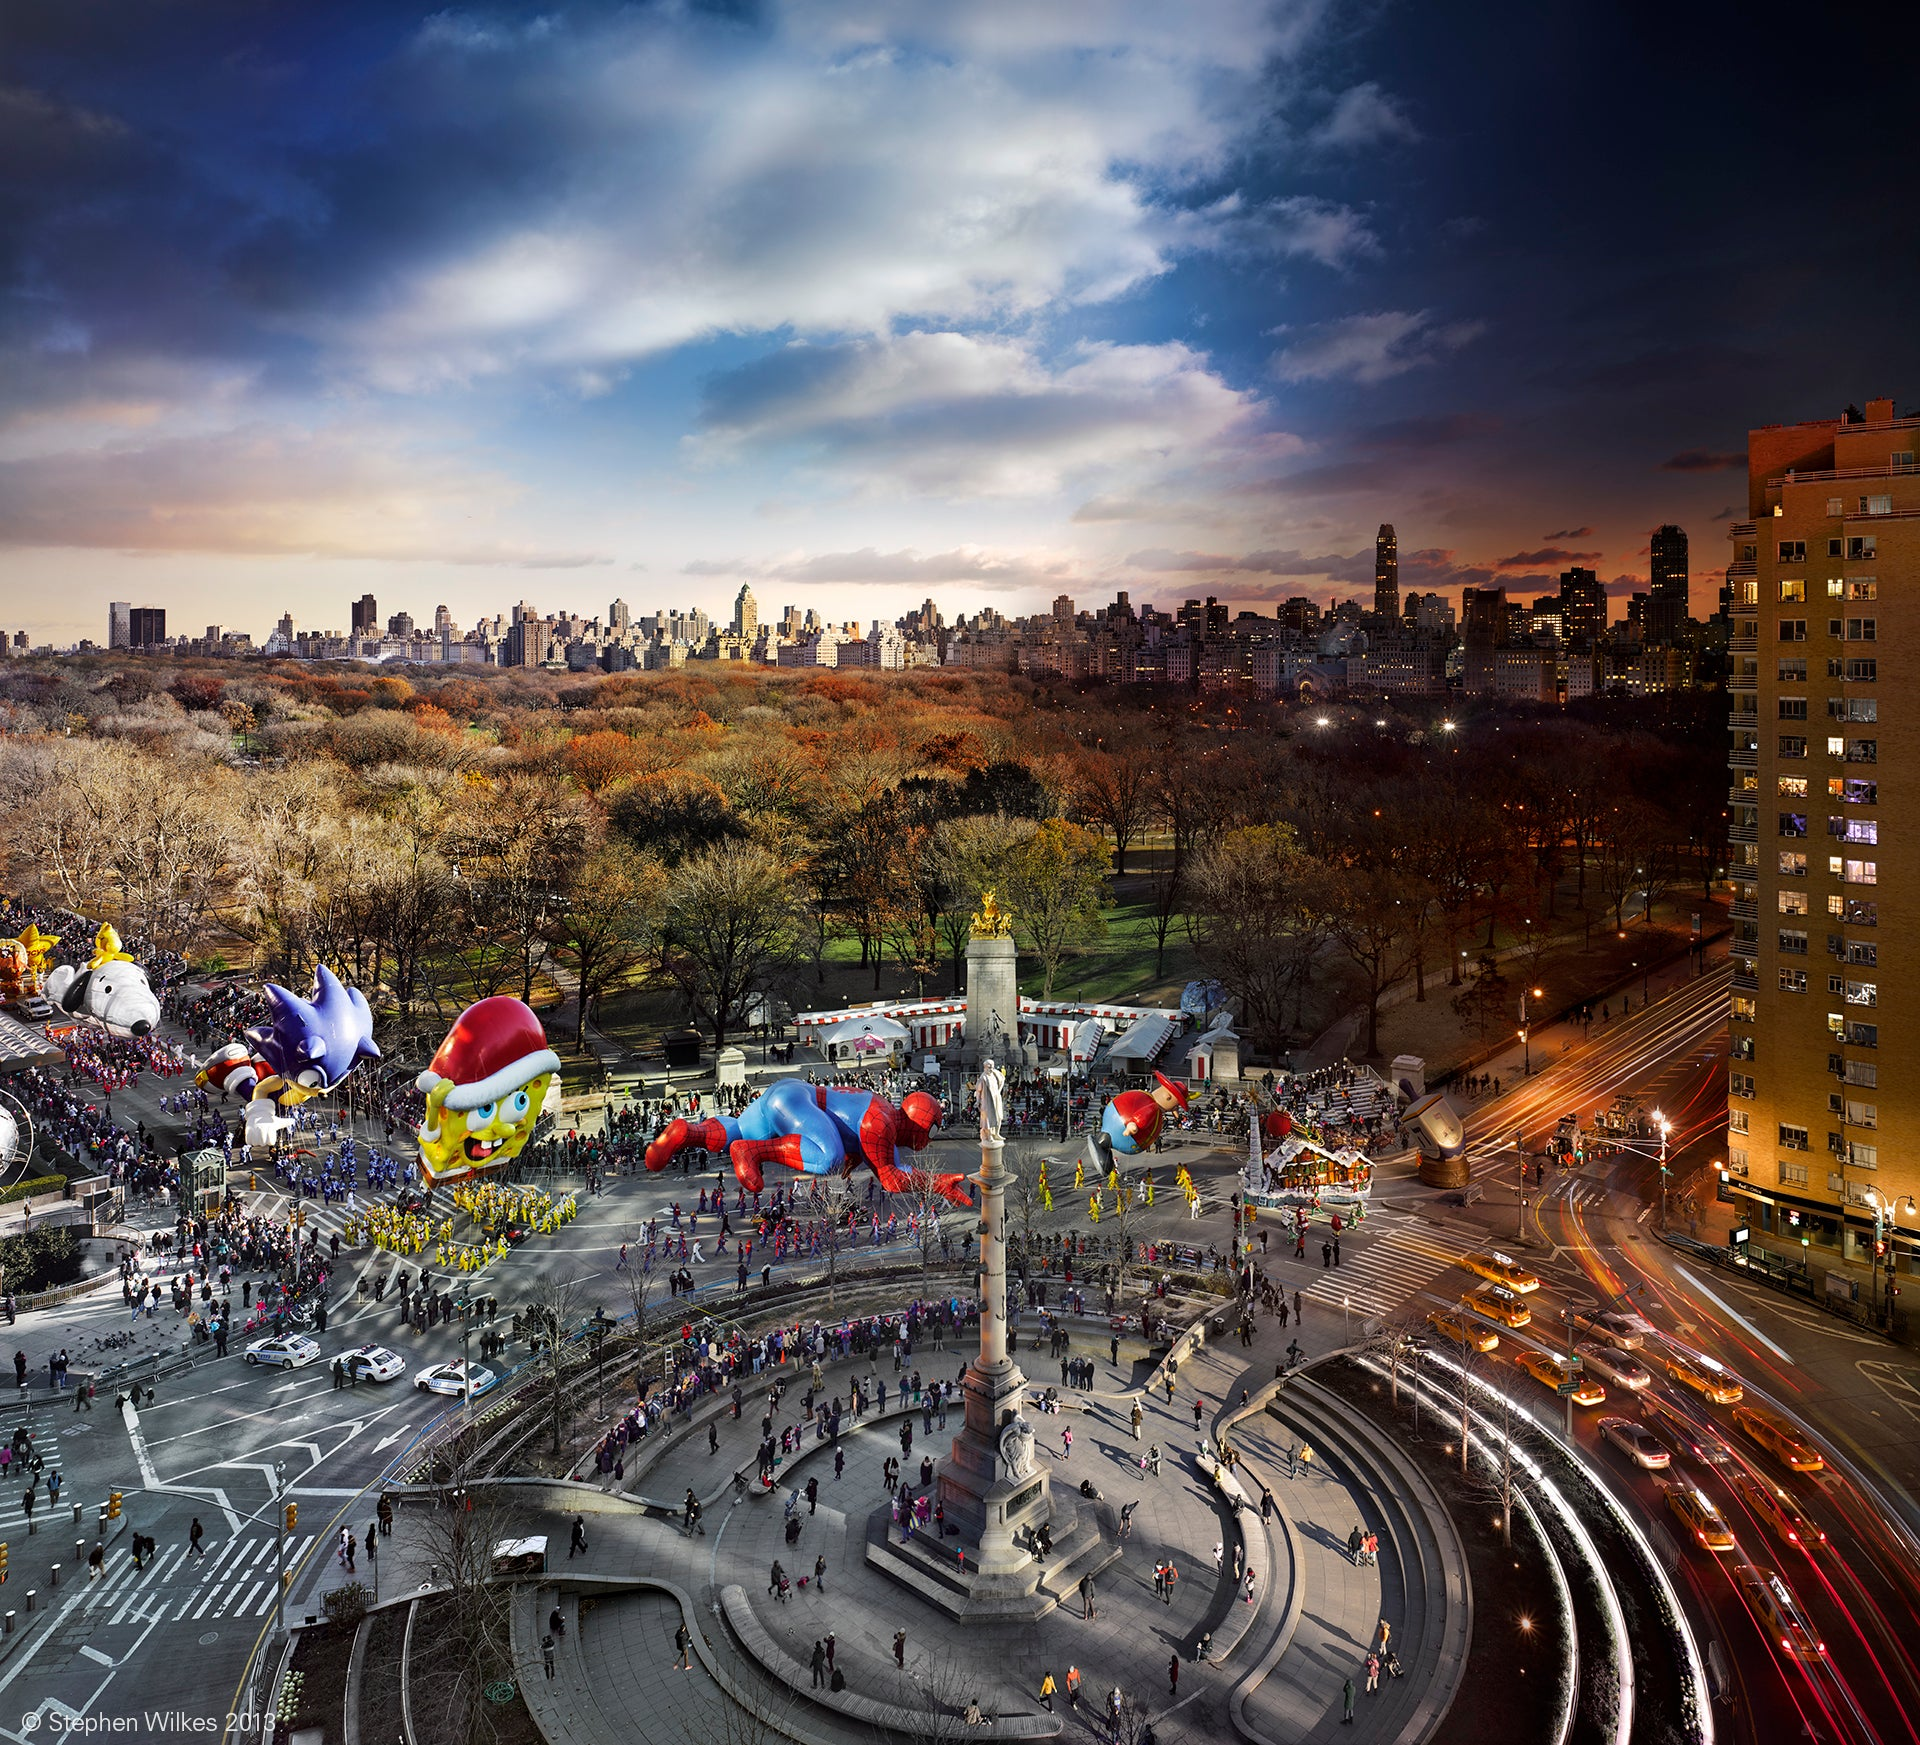 Stunning Time Passages through the Lens of Stephen Wilkes